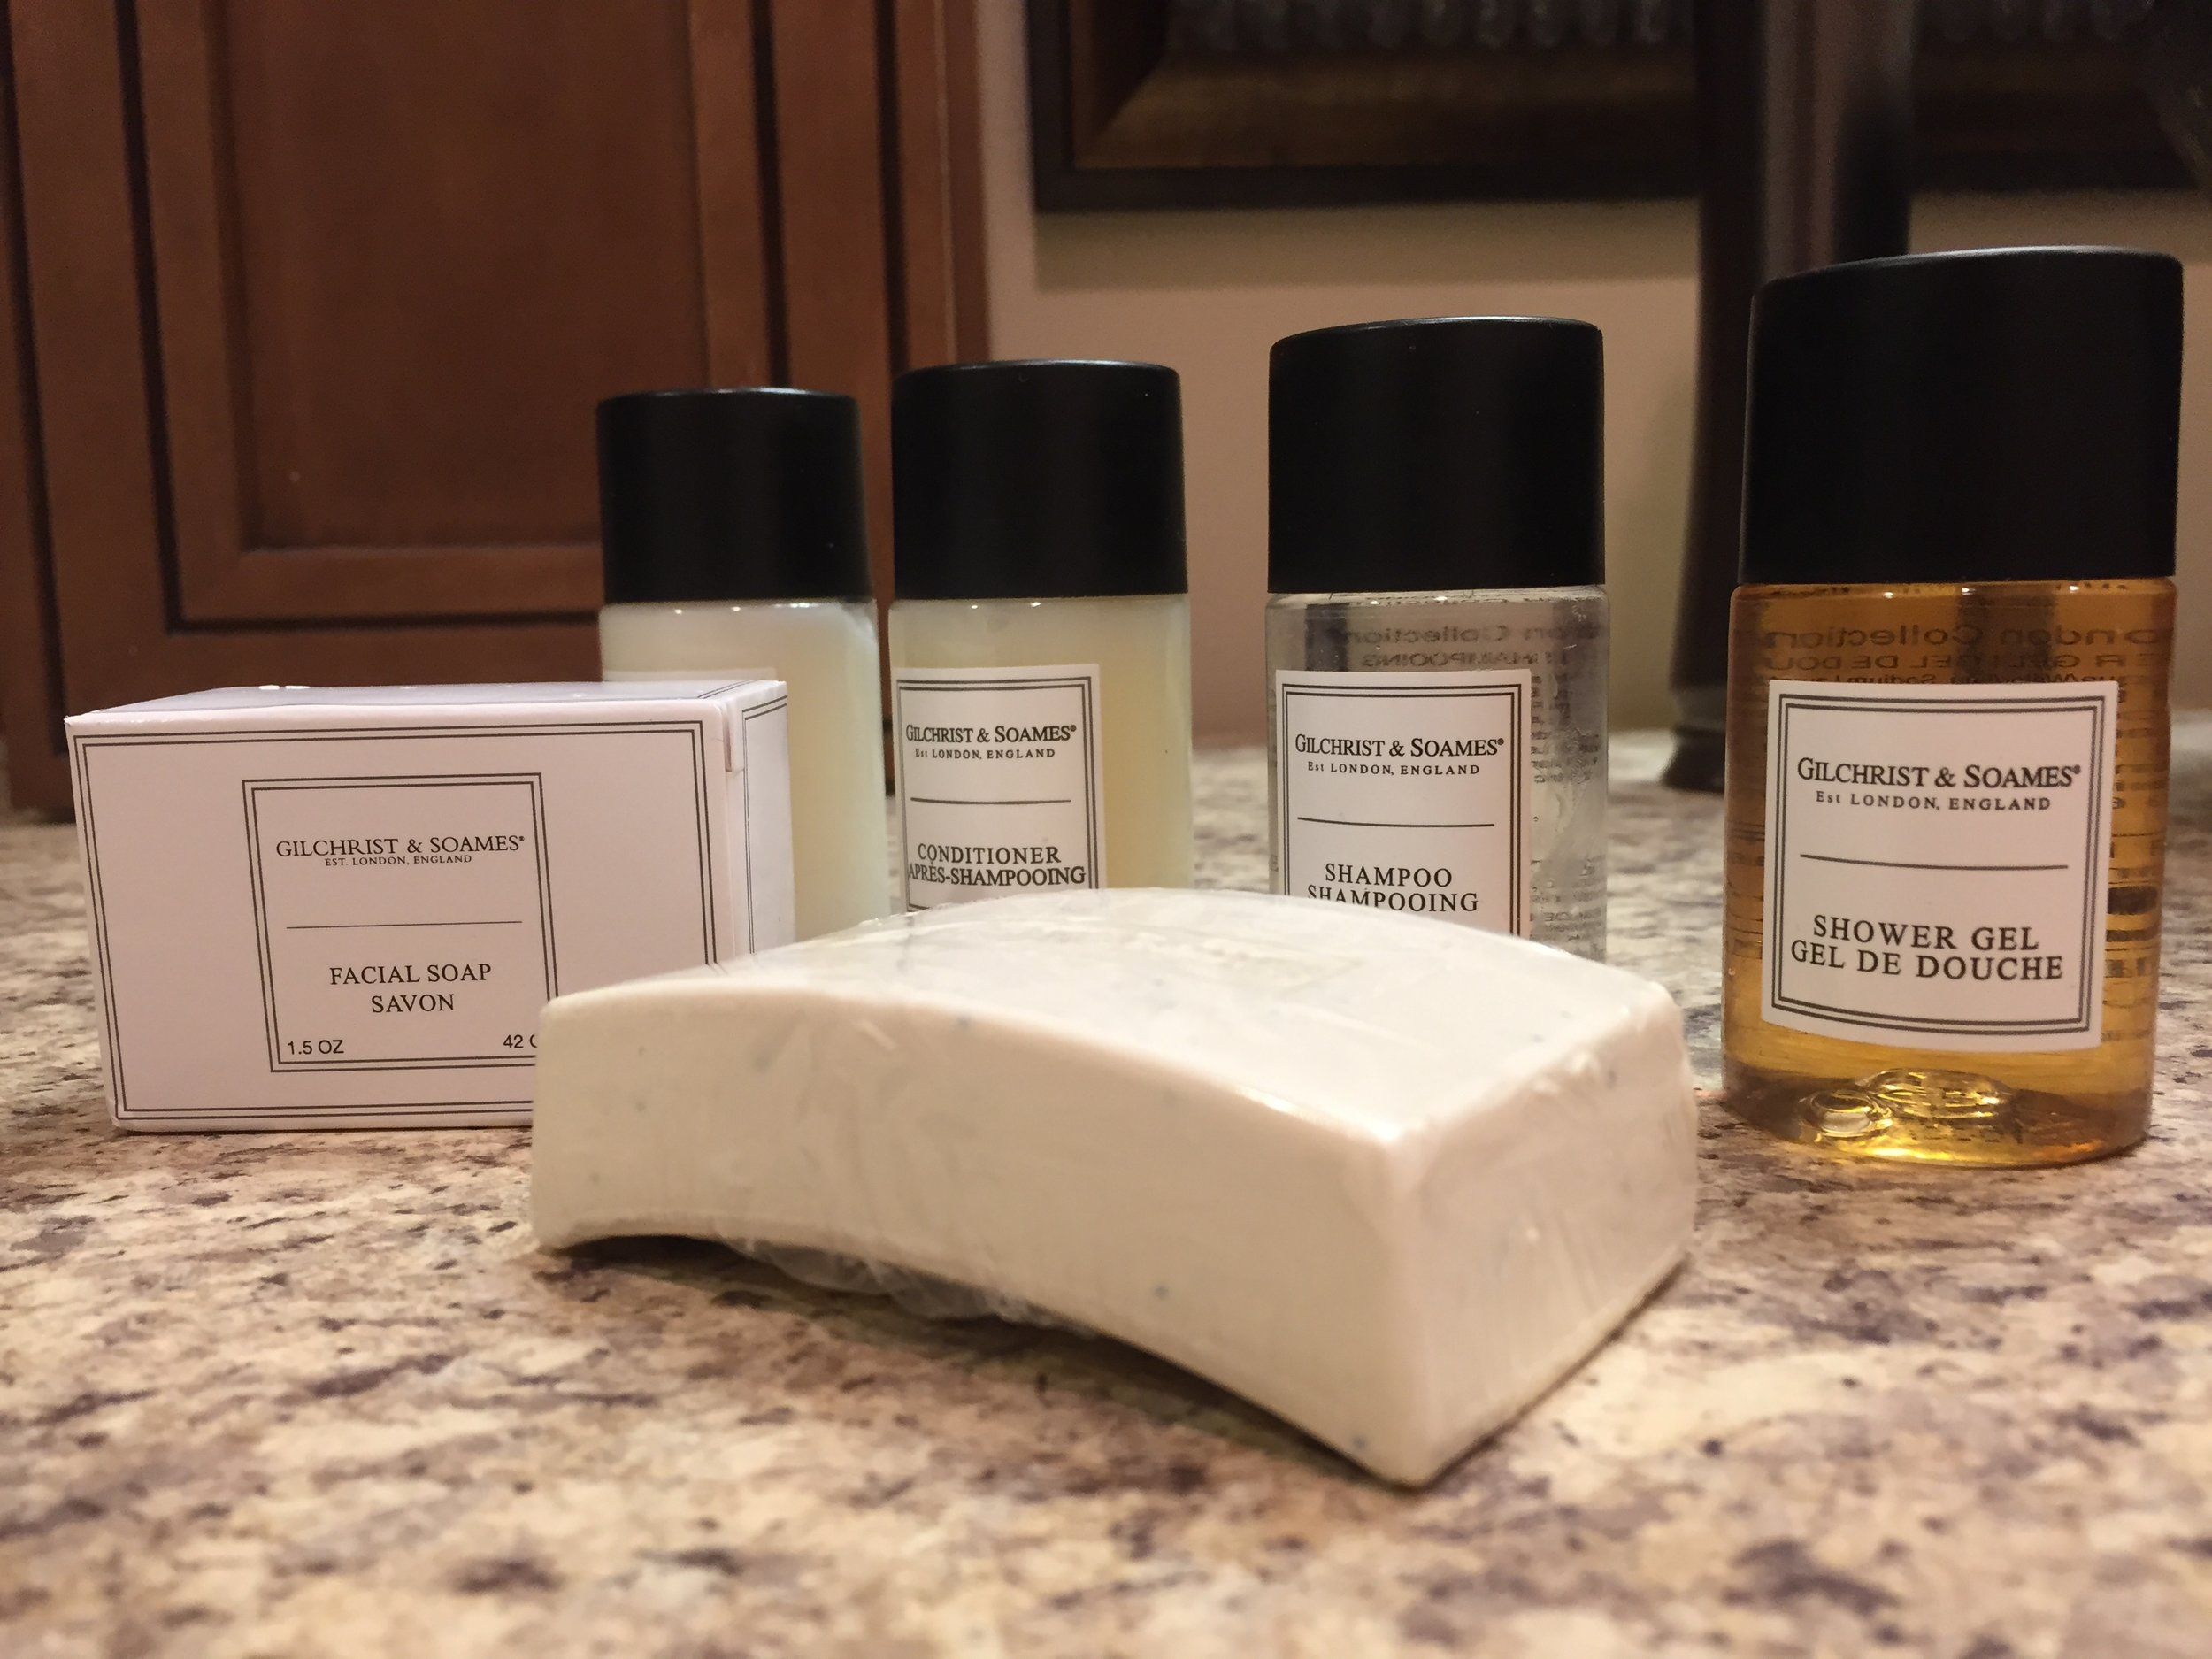 Gilchrist & Soames is my  favorite brand of hotel toiletries! Freshly scented and environmentally-friendly. I get unreasonably excited when I see these bottles in a hotel room. (toiletries courtesy  Tambo del Inka Resort & Spa )